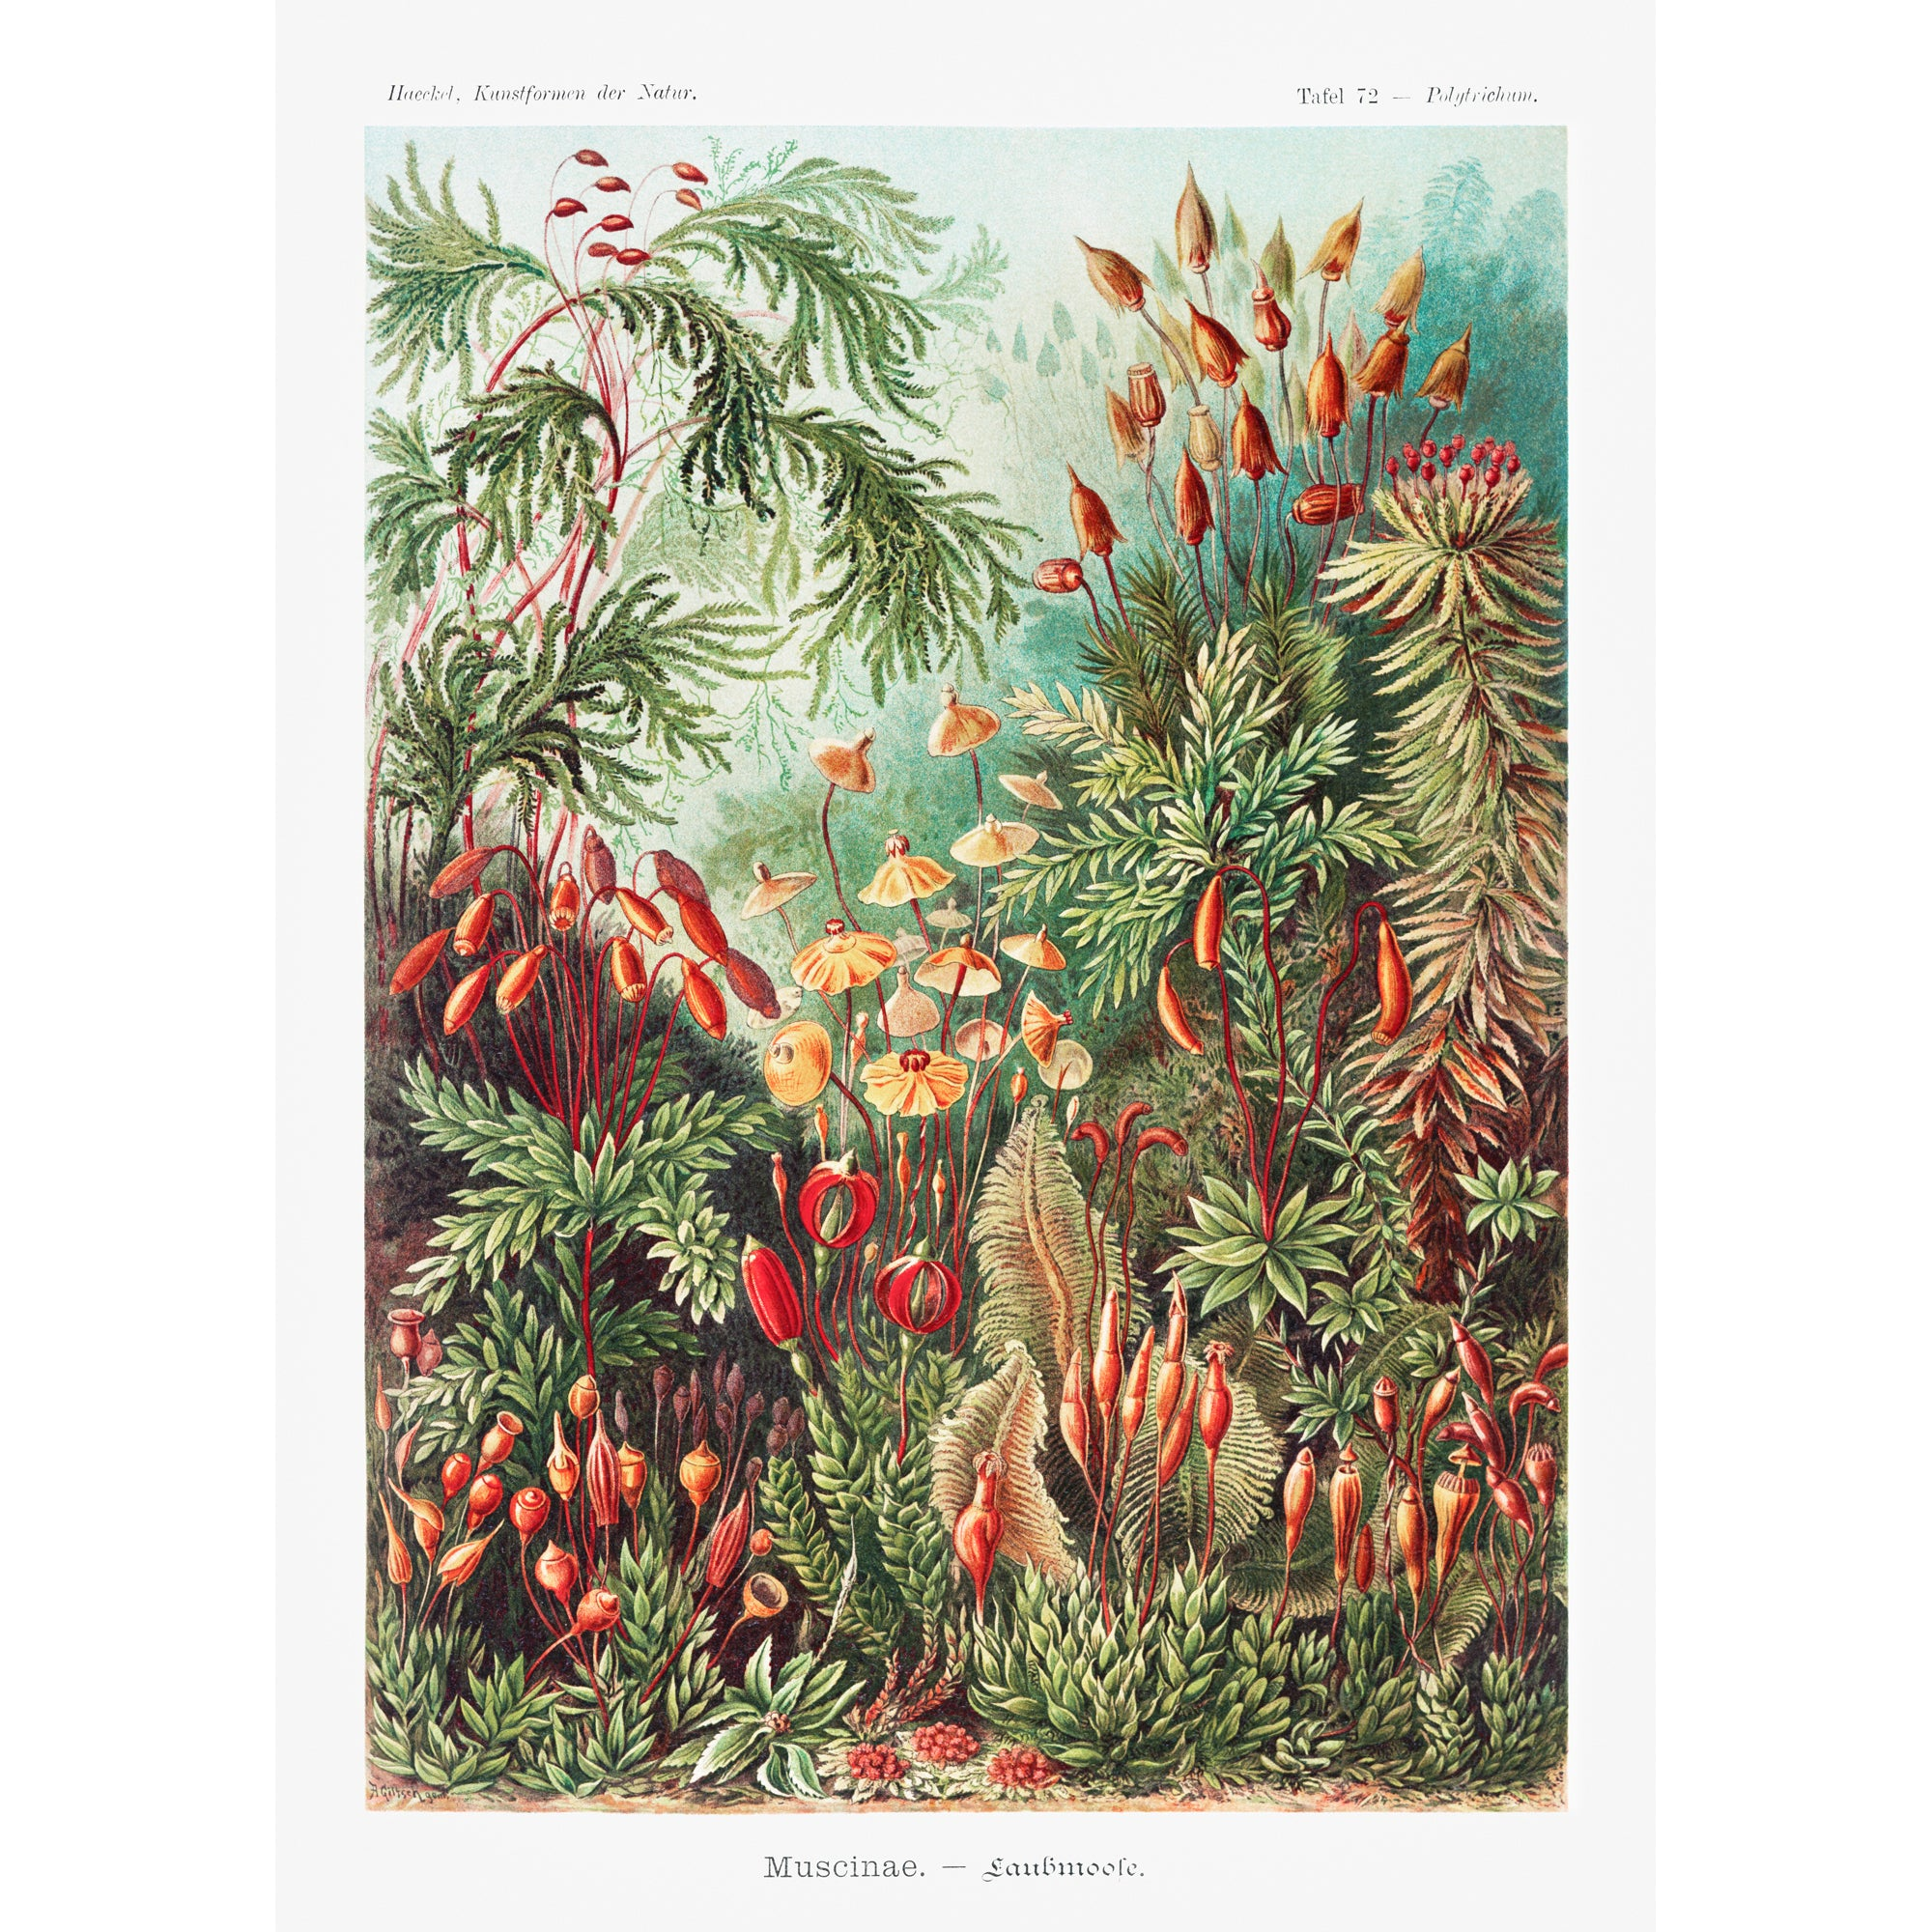 <i>Muscinae</i> by Ernst Haeckel